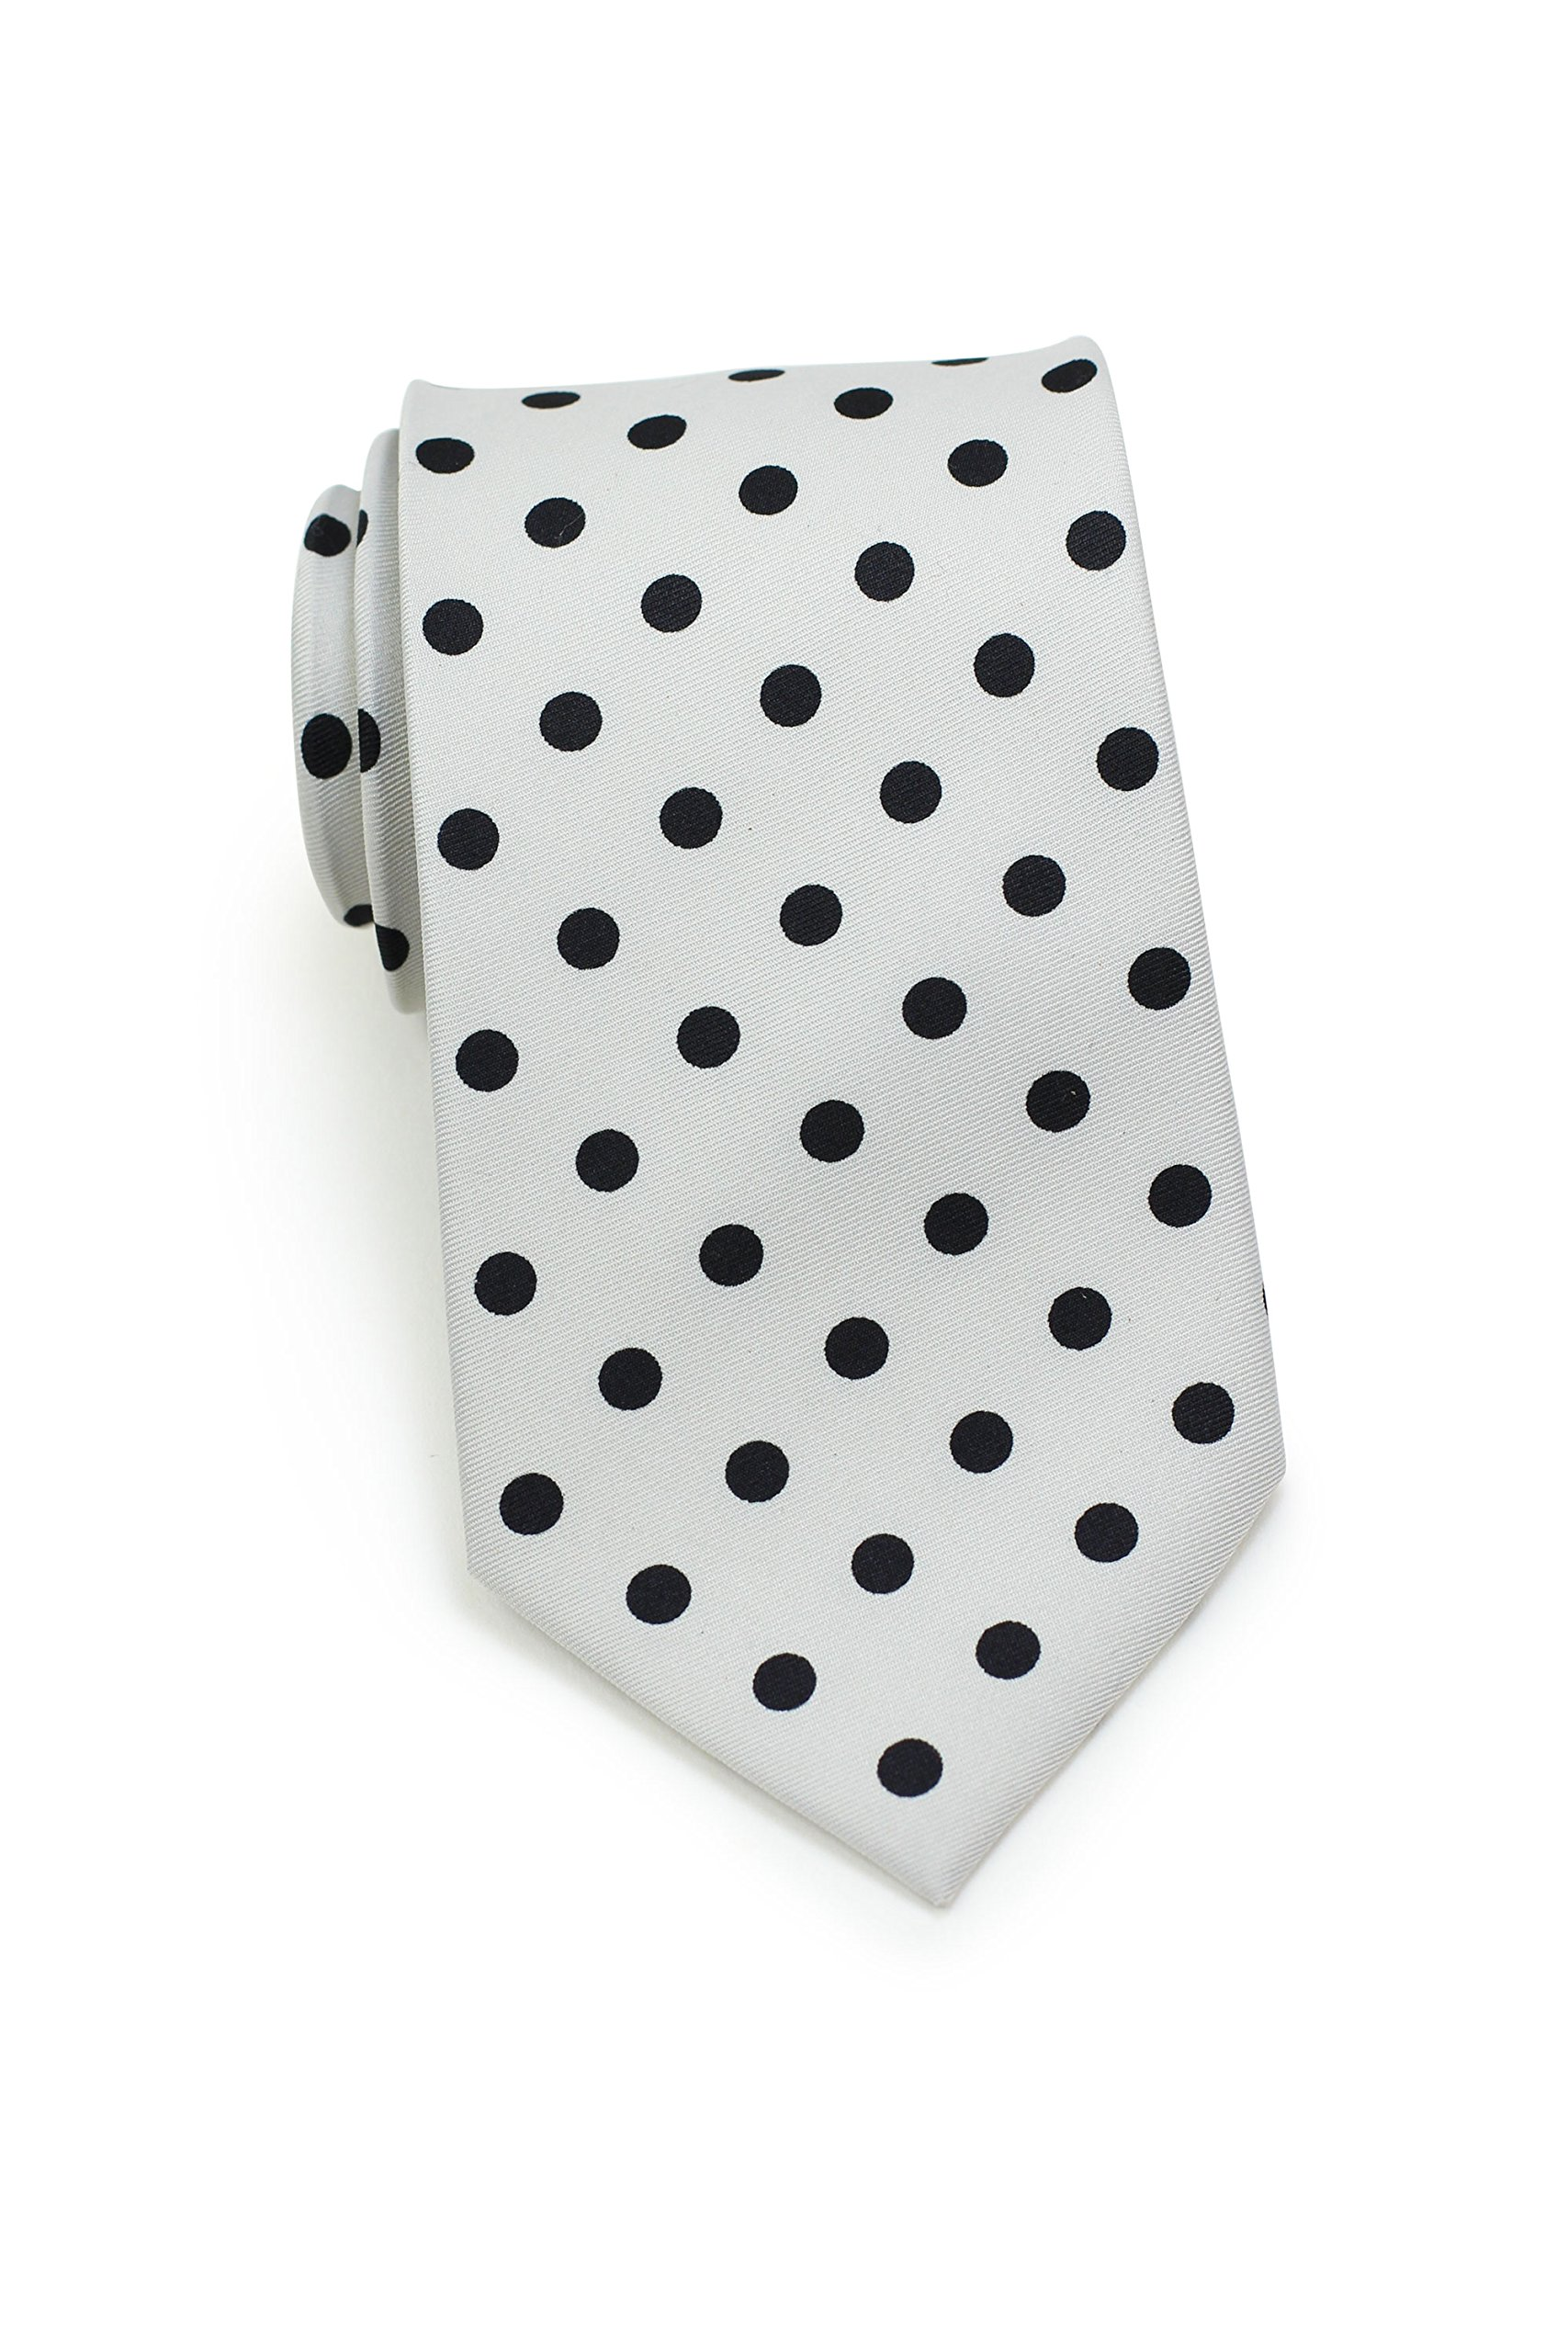 Bows-N-Ties Men's Necktie Bold Polka Dot Microfiber Satin Tie 3.1 Inches (Silver and Black)